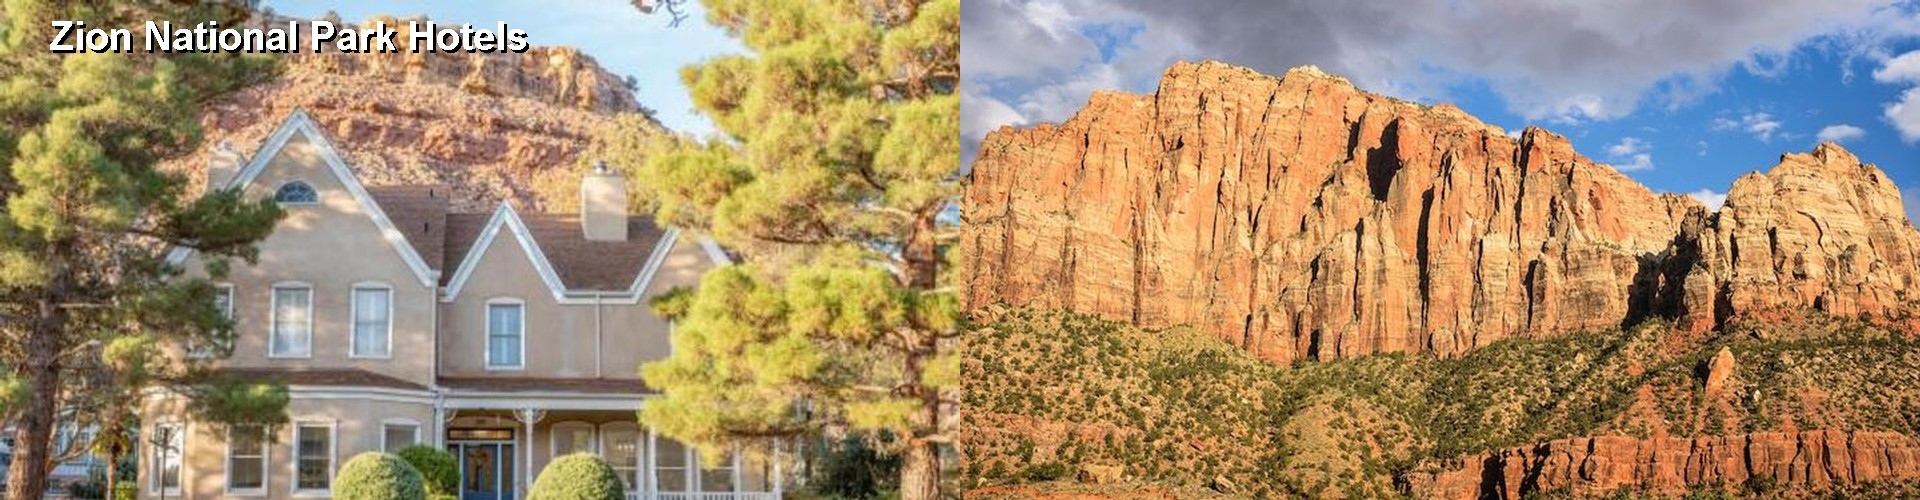 5 Best Hotels near Zion National Park